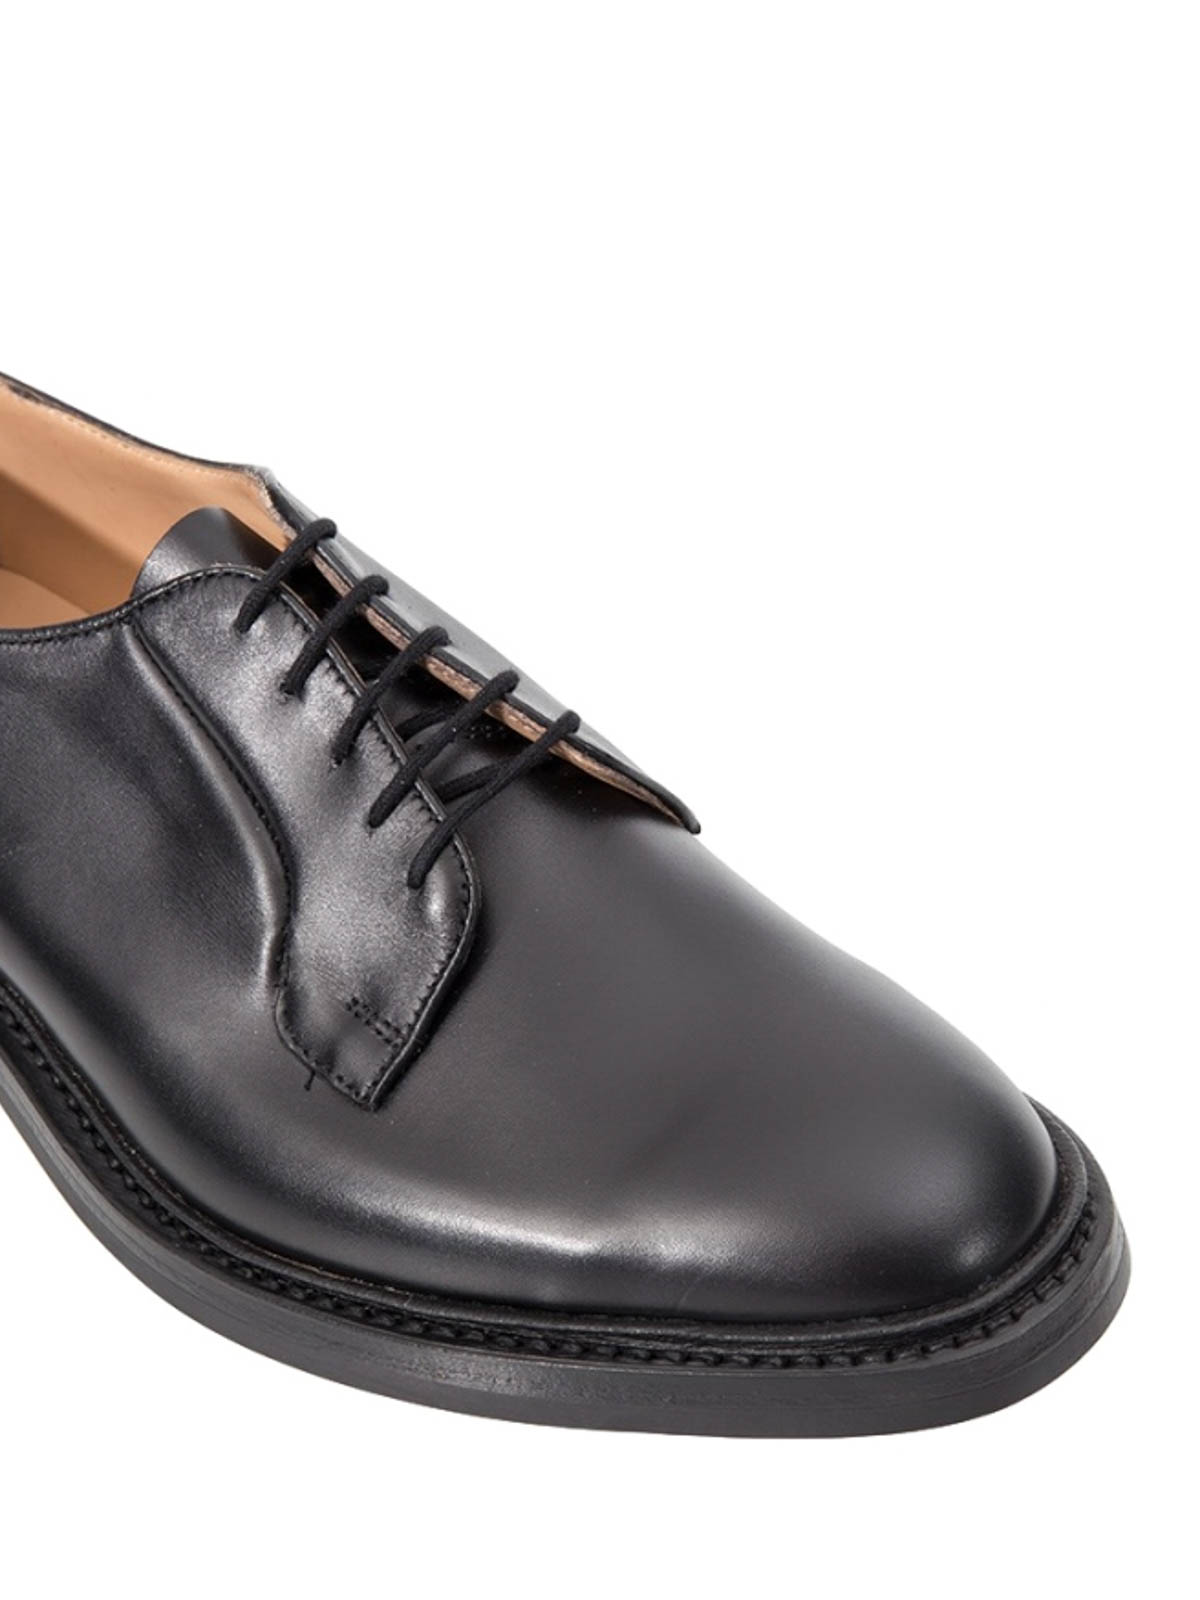 robert derby shoes by tricker s classic shoes ikrix